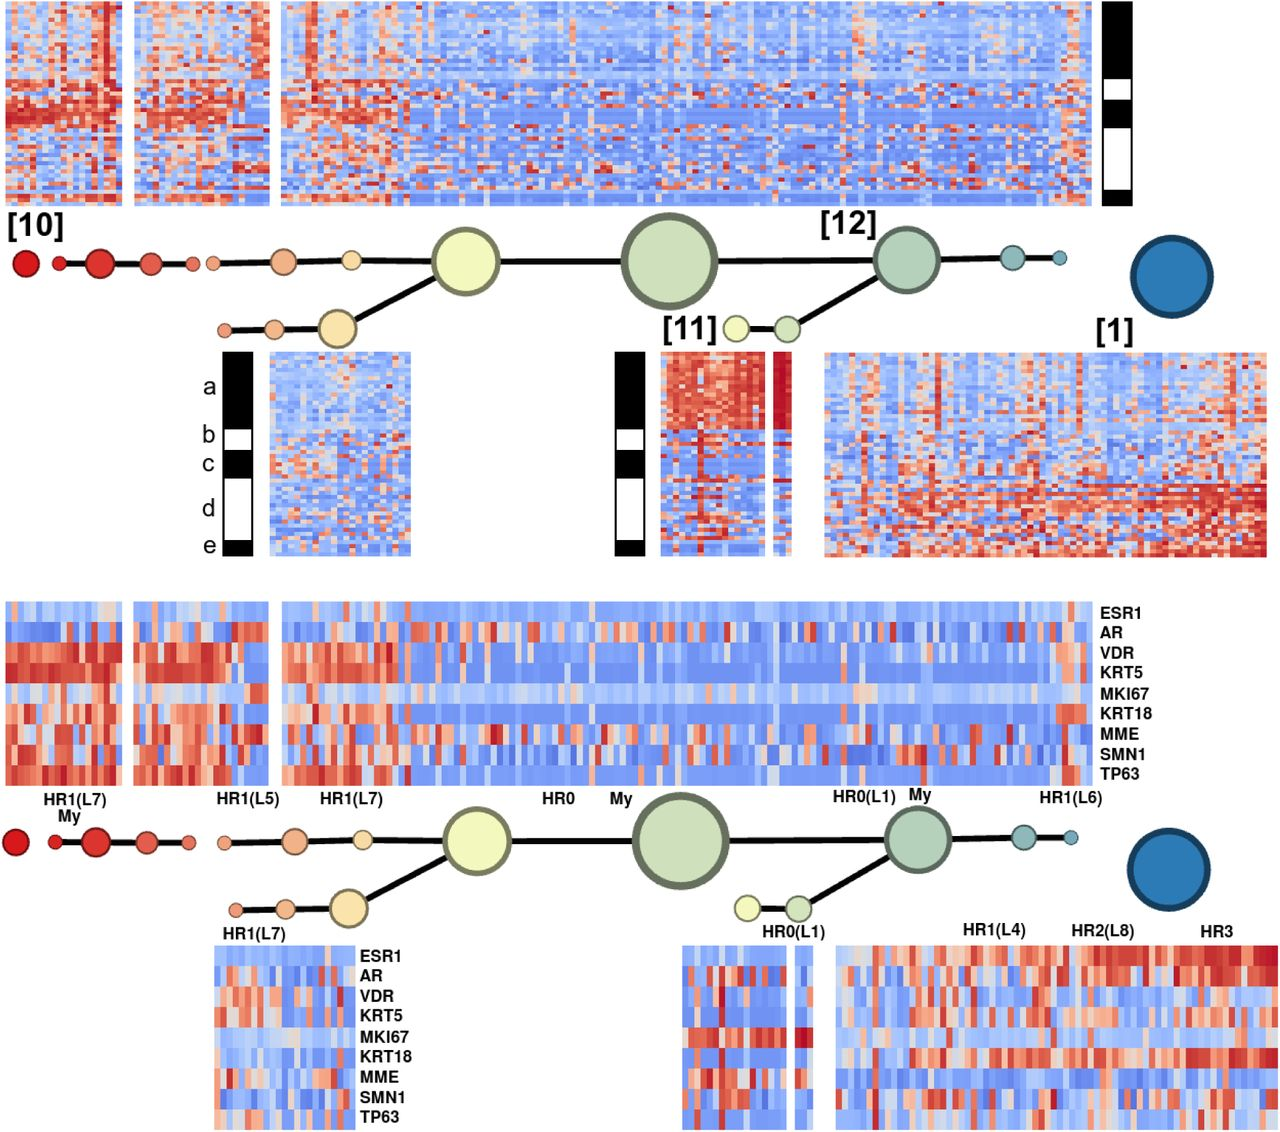 Topological Data Analysis of PAM50 and 21-Gene Breast Cancer